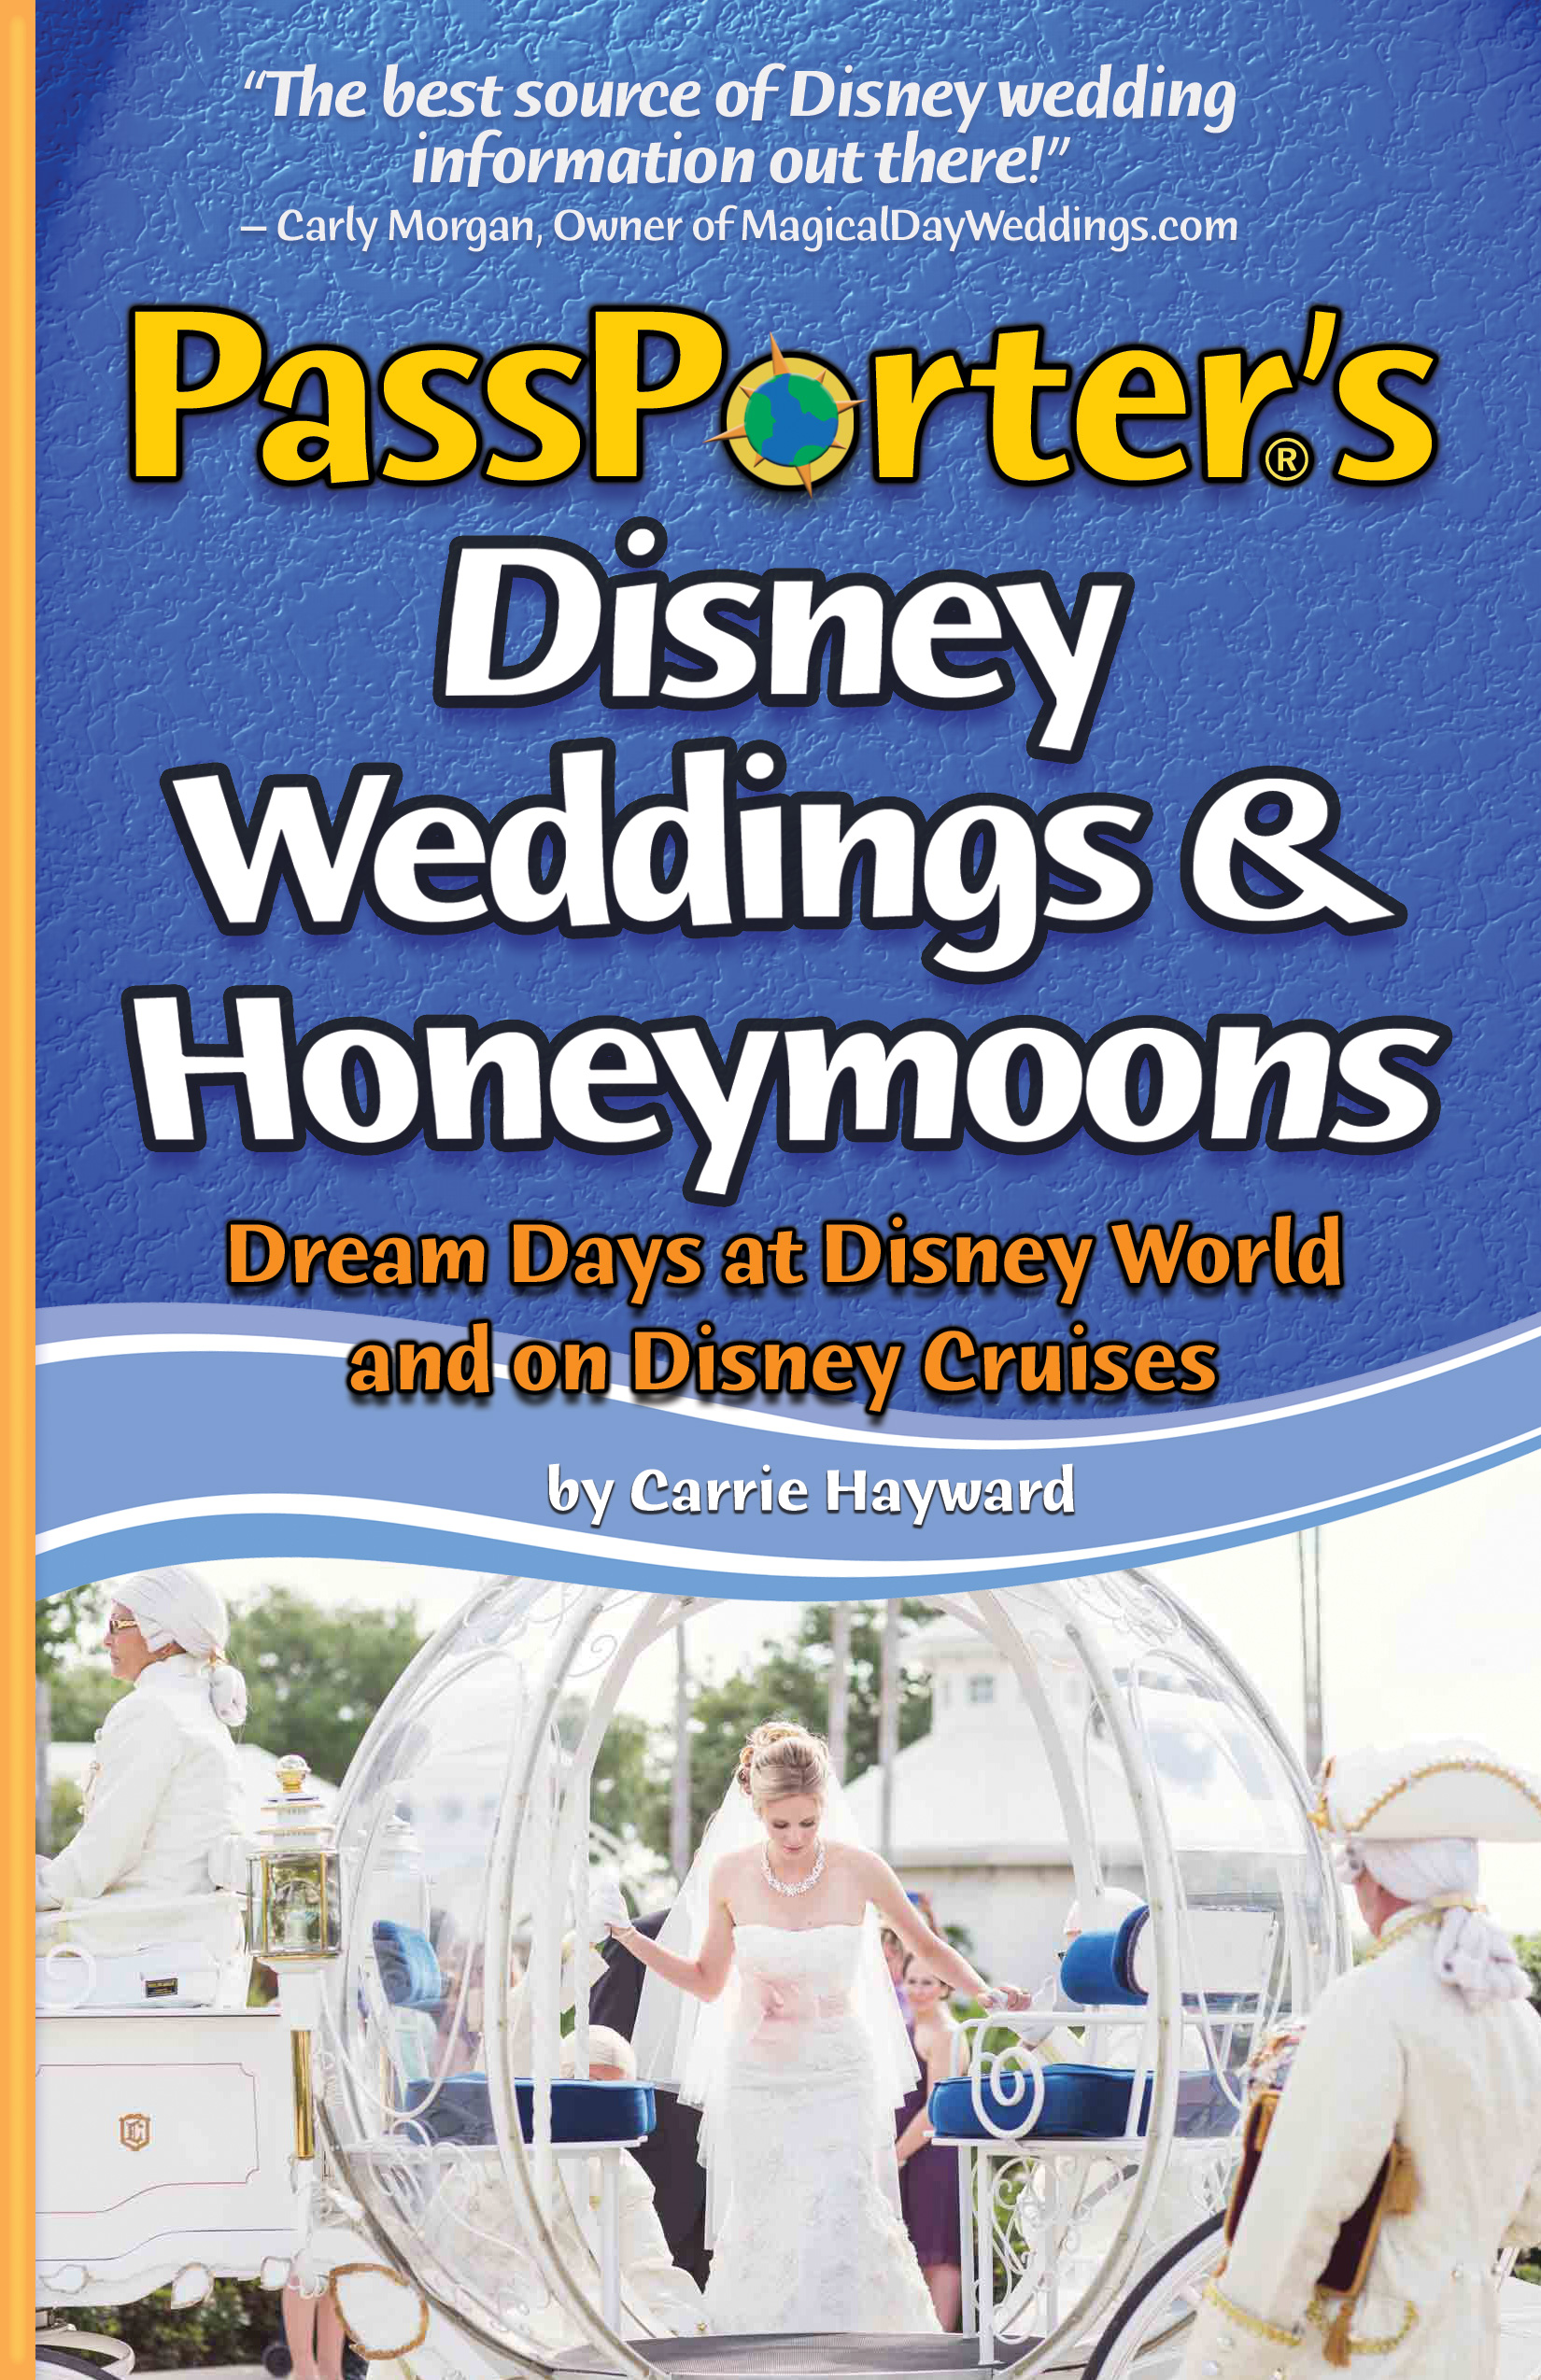 Plan your dream Disney wedding with the BEST source of information! | Disney Weddings Guide Book | PassPorter.com